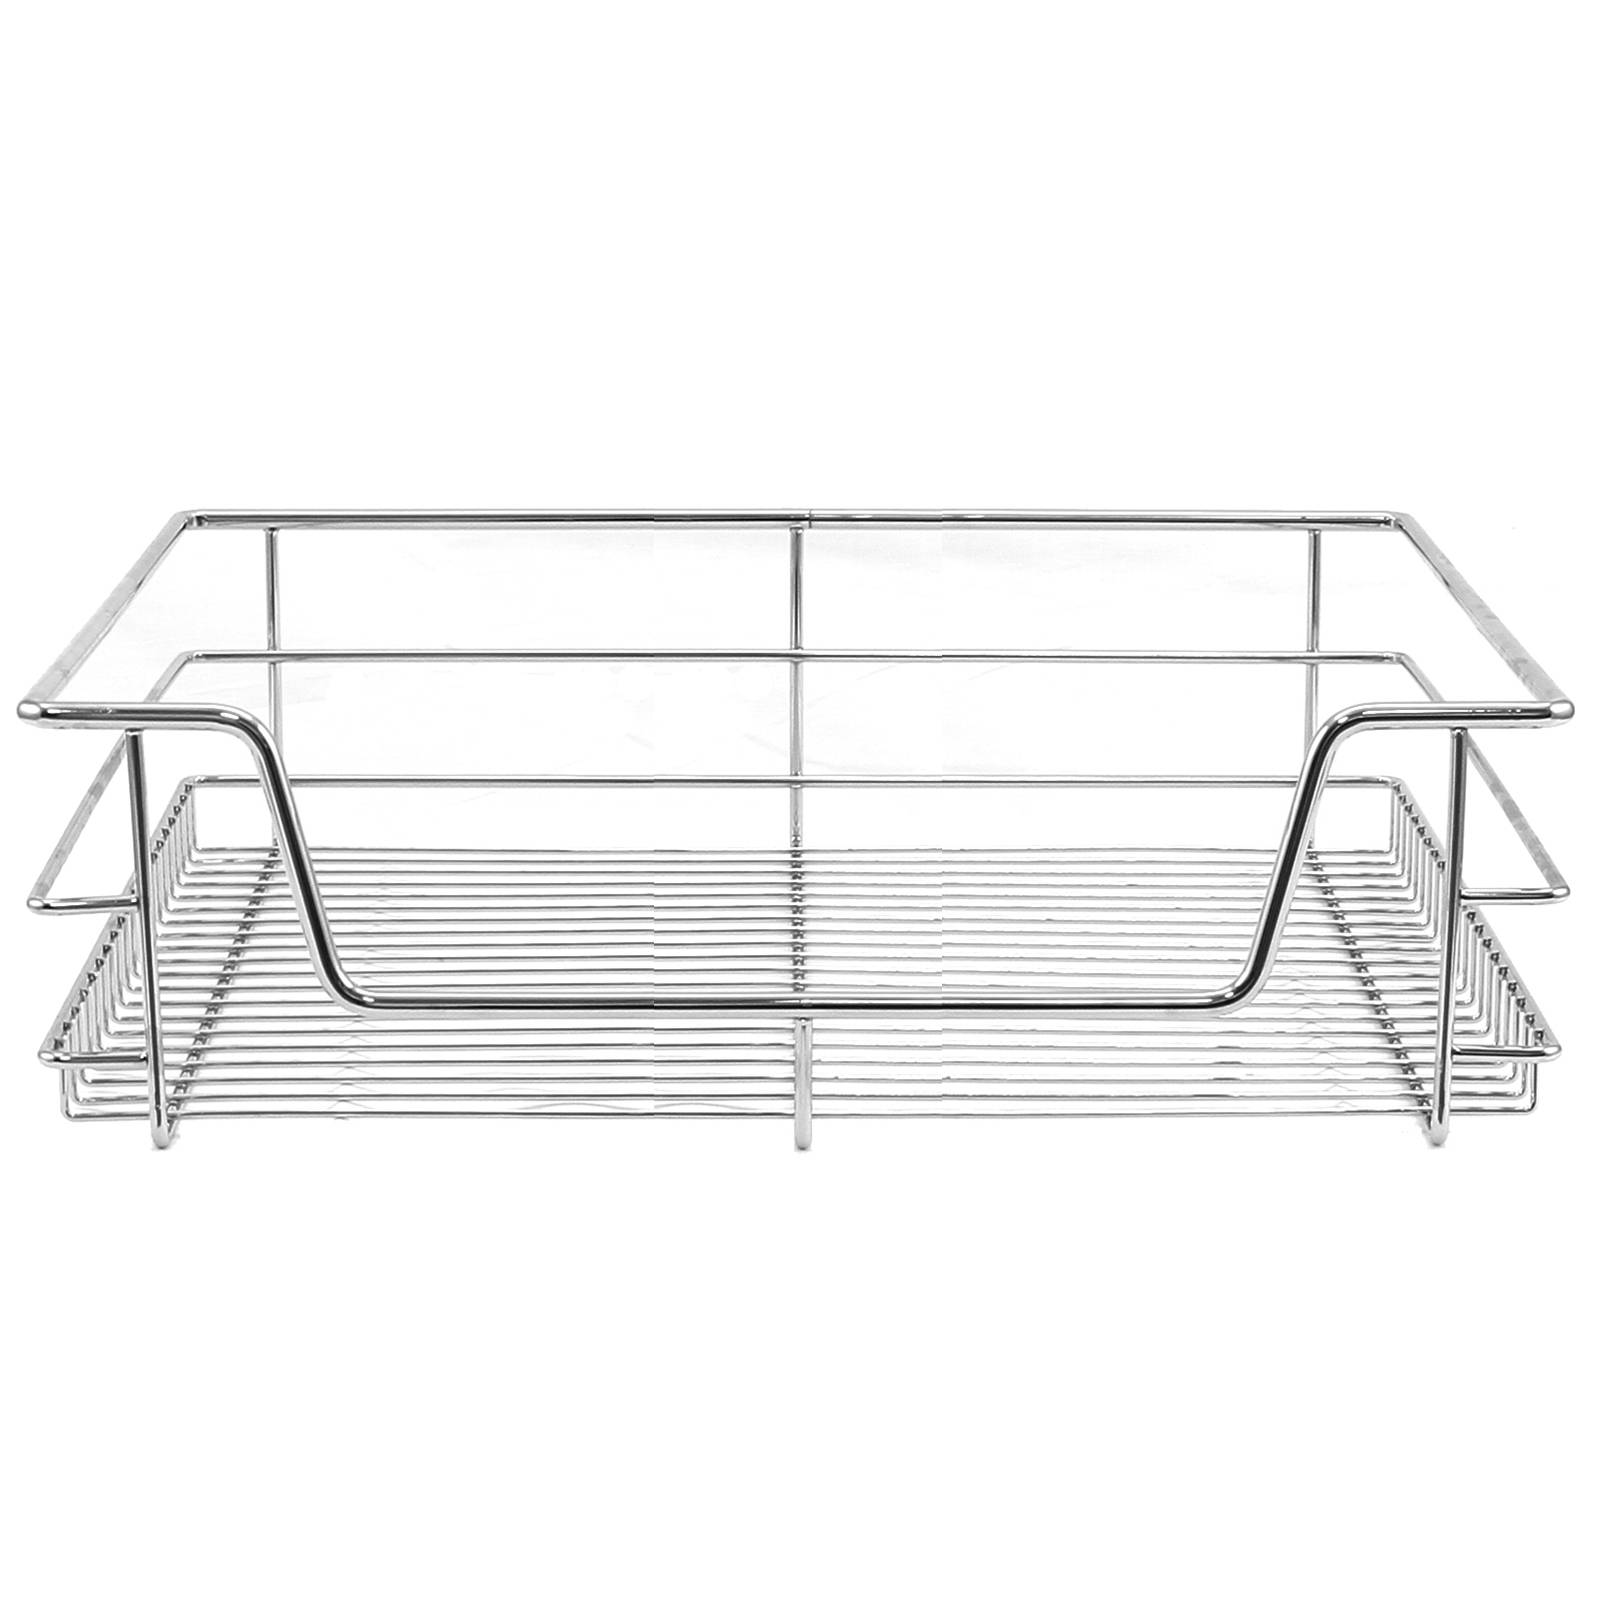 kitchen sliding baskets design your online 5 pull out wire slide storage cupboard